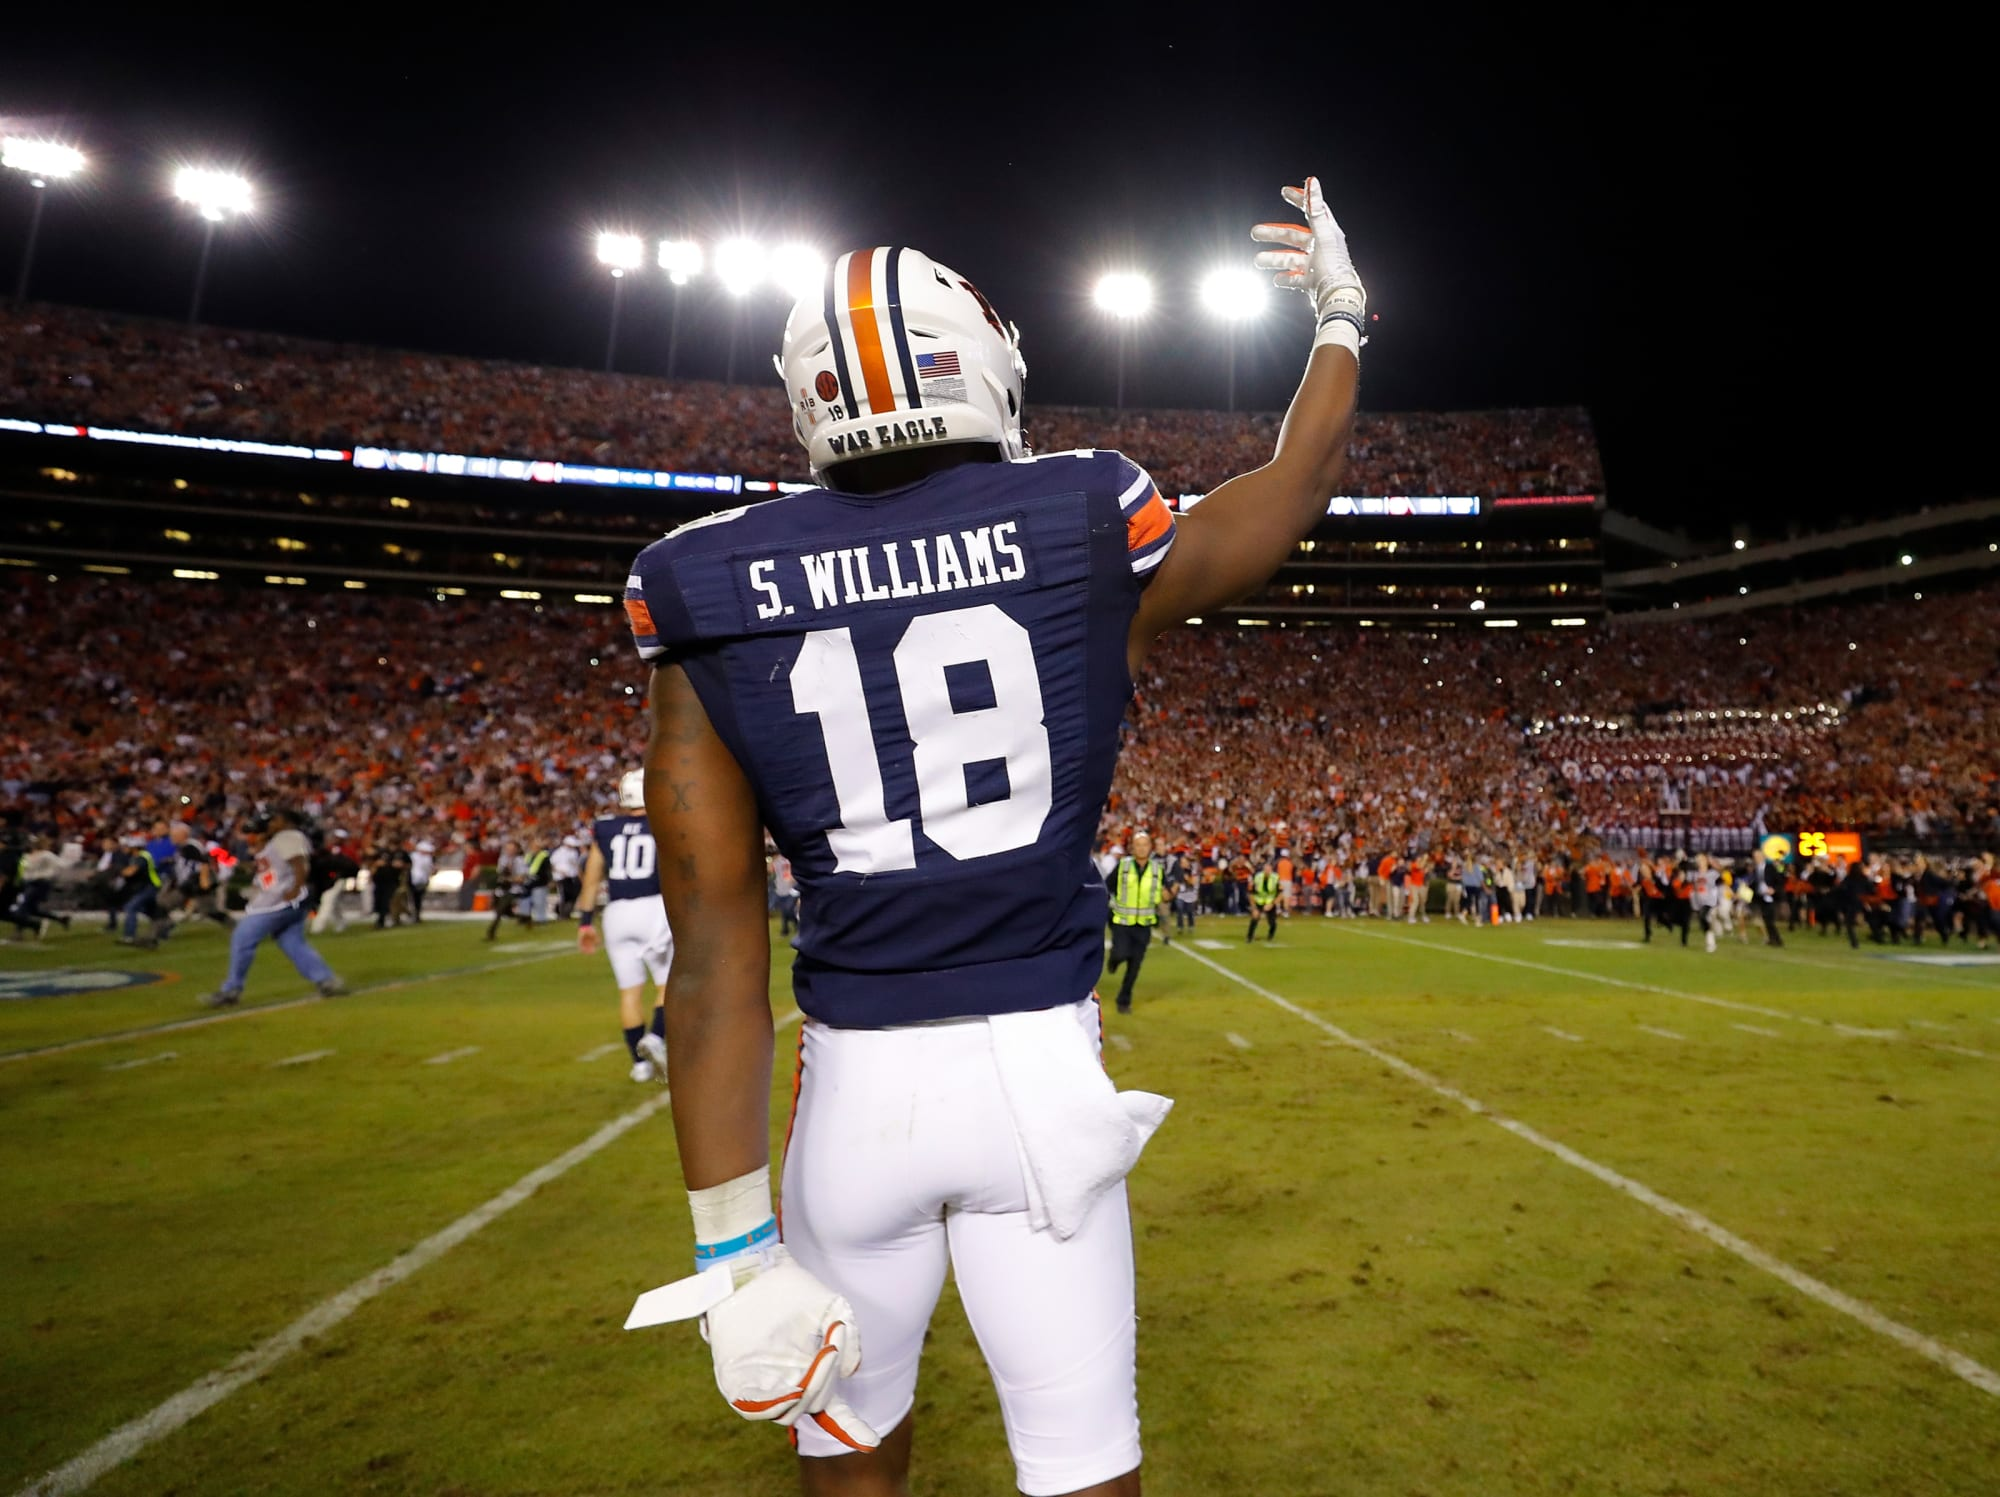 Auburn football: Taking a look at the Tigers' talented group of receivers